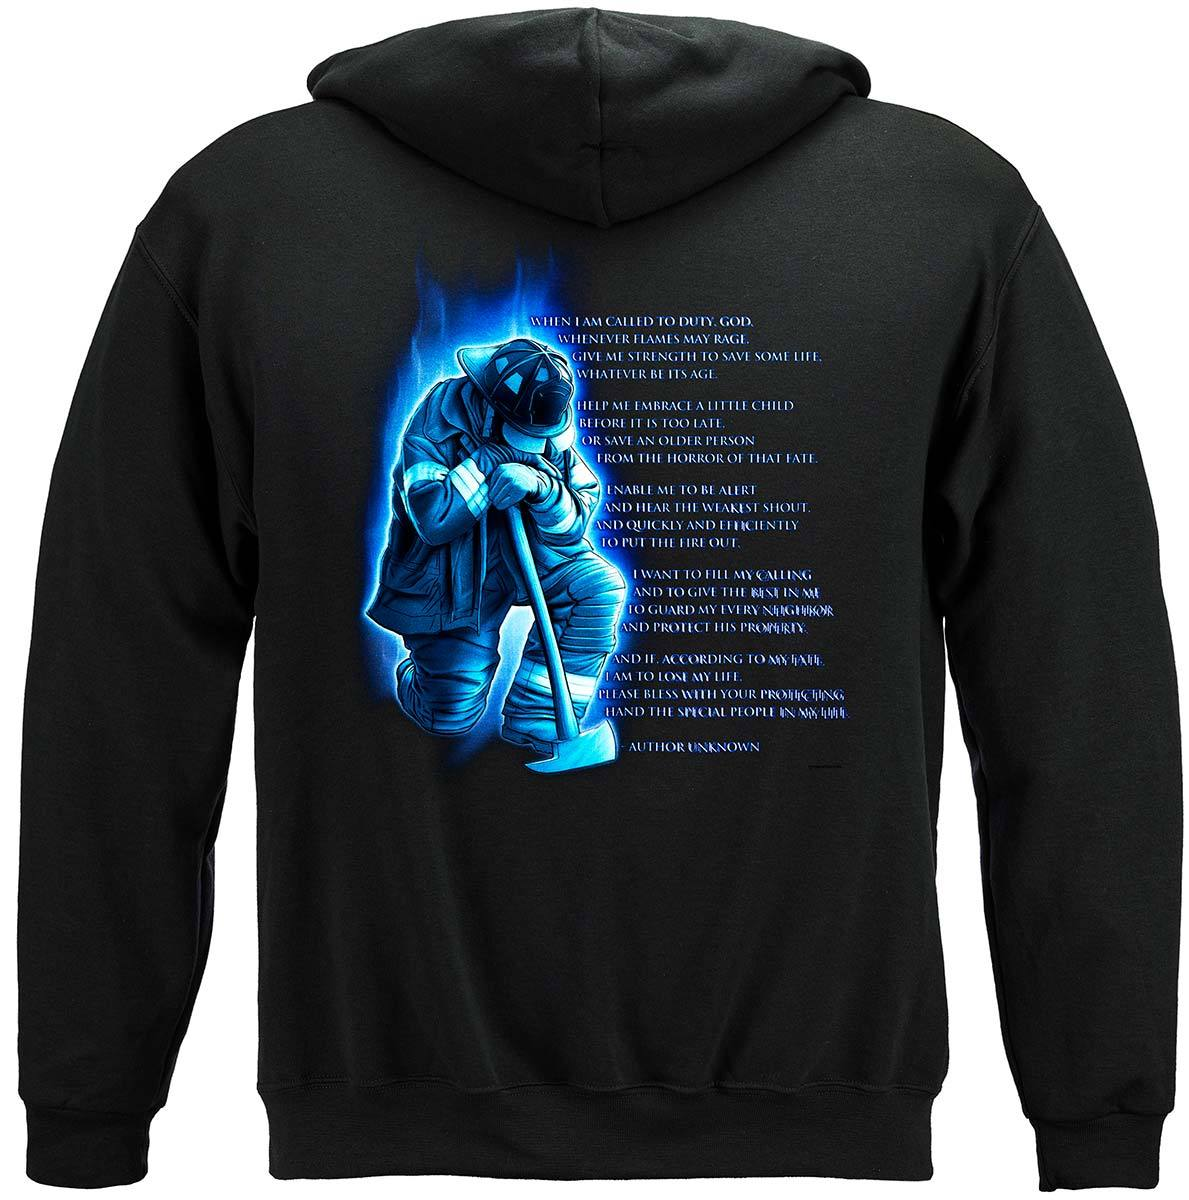 Fireman's Prayer Premium Hooded Sweat Shirt